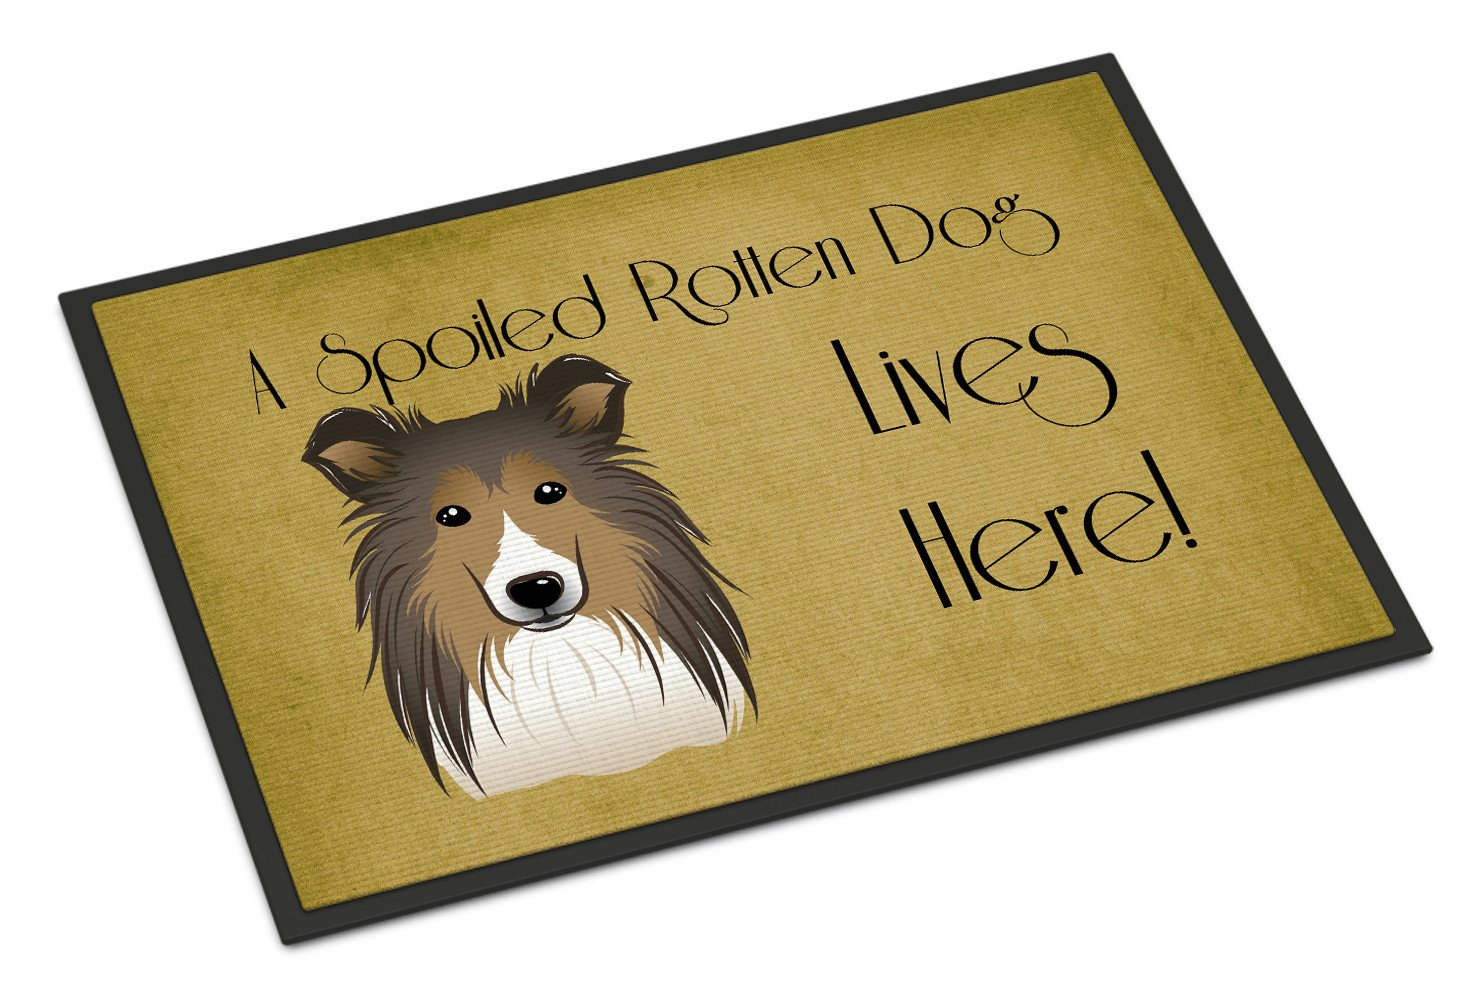 Sheltie Spoiled Dog Lives Here Indoor or Outdoor Mat 18x27 BB1490MAT - the-store.com